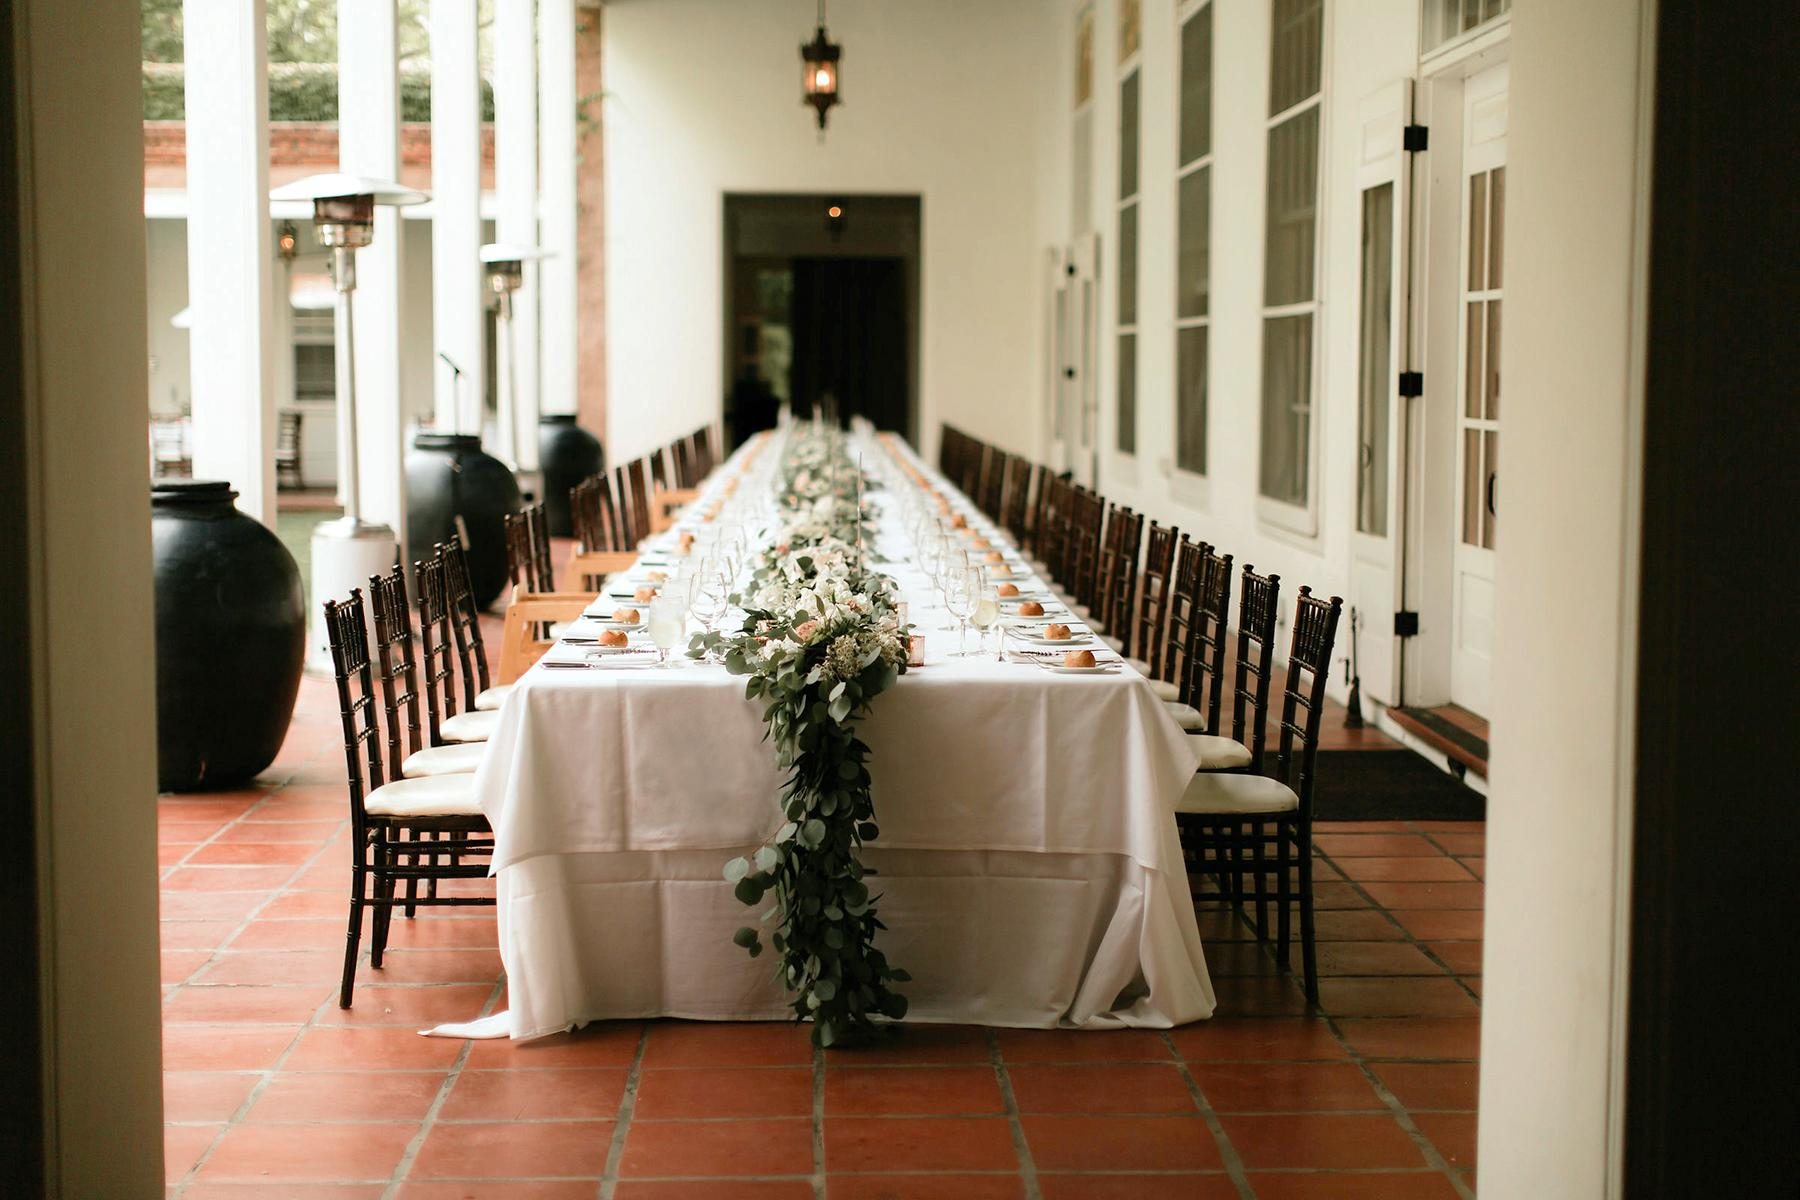 06_RusticWeddingVenues__LosPoblanosHistoricInn_Alicia Lucia Photography_Long Table on Portal